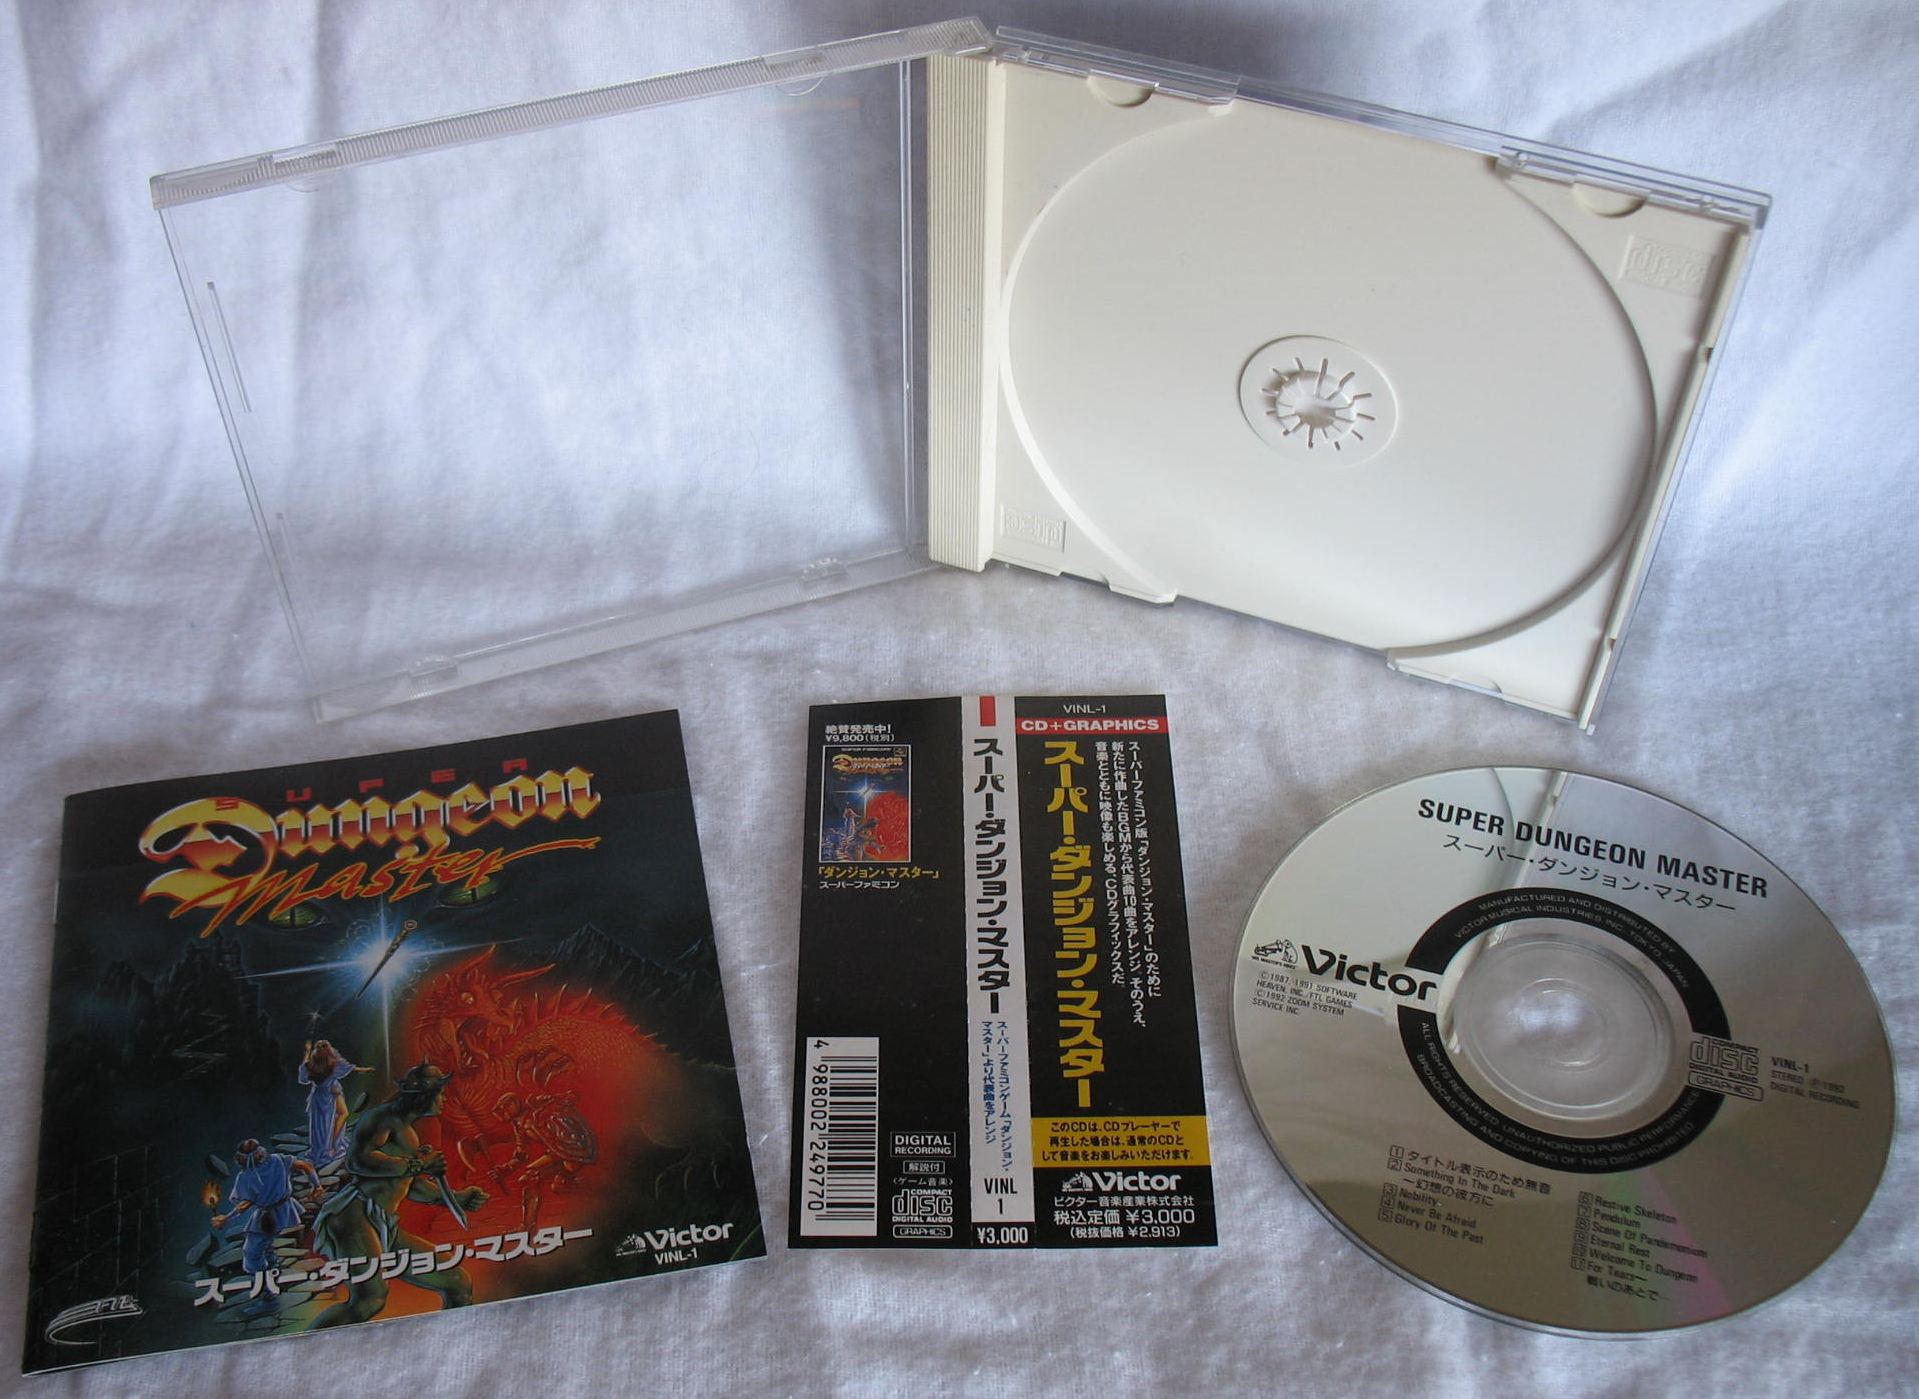 Audio CD - Super Dungeon Master - JP - All - Overview - Photo